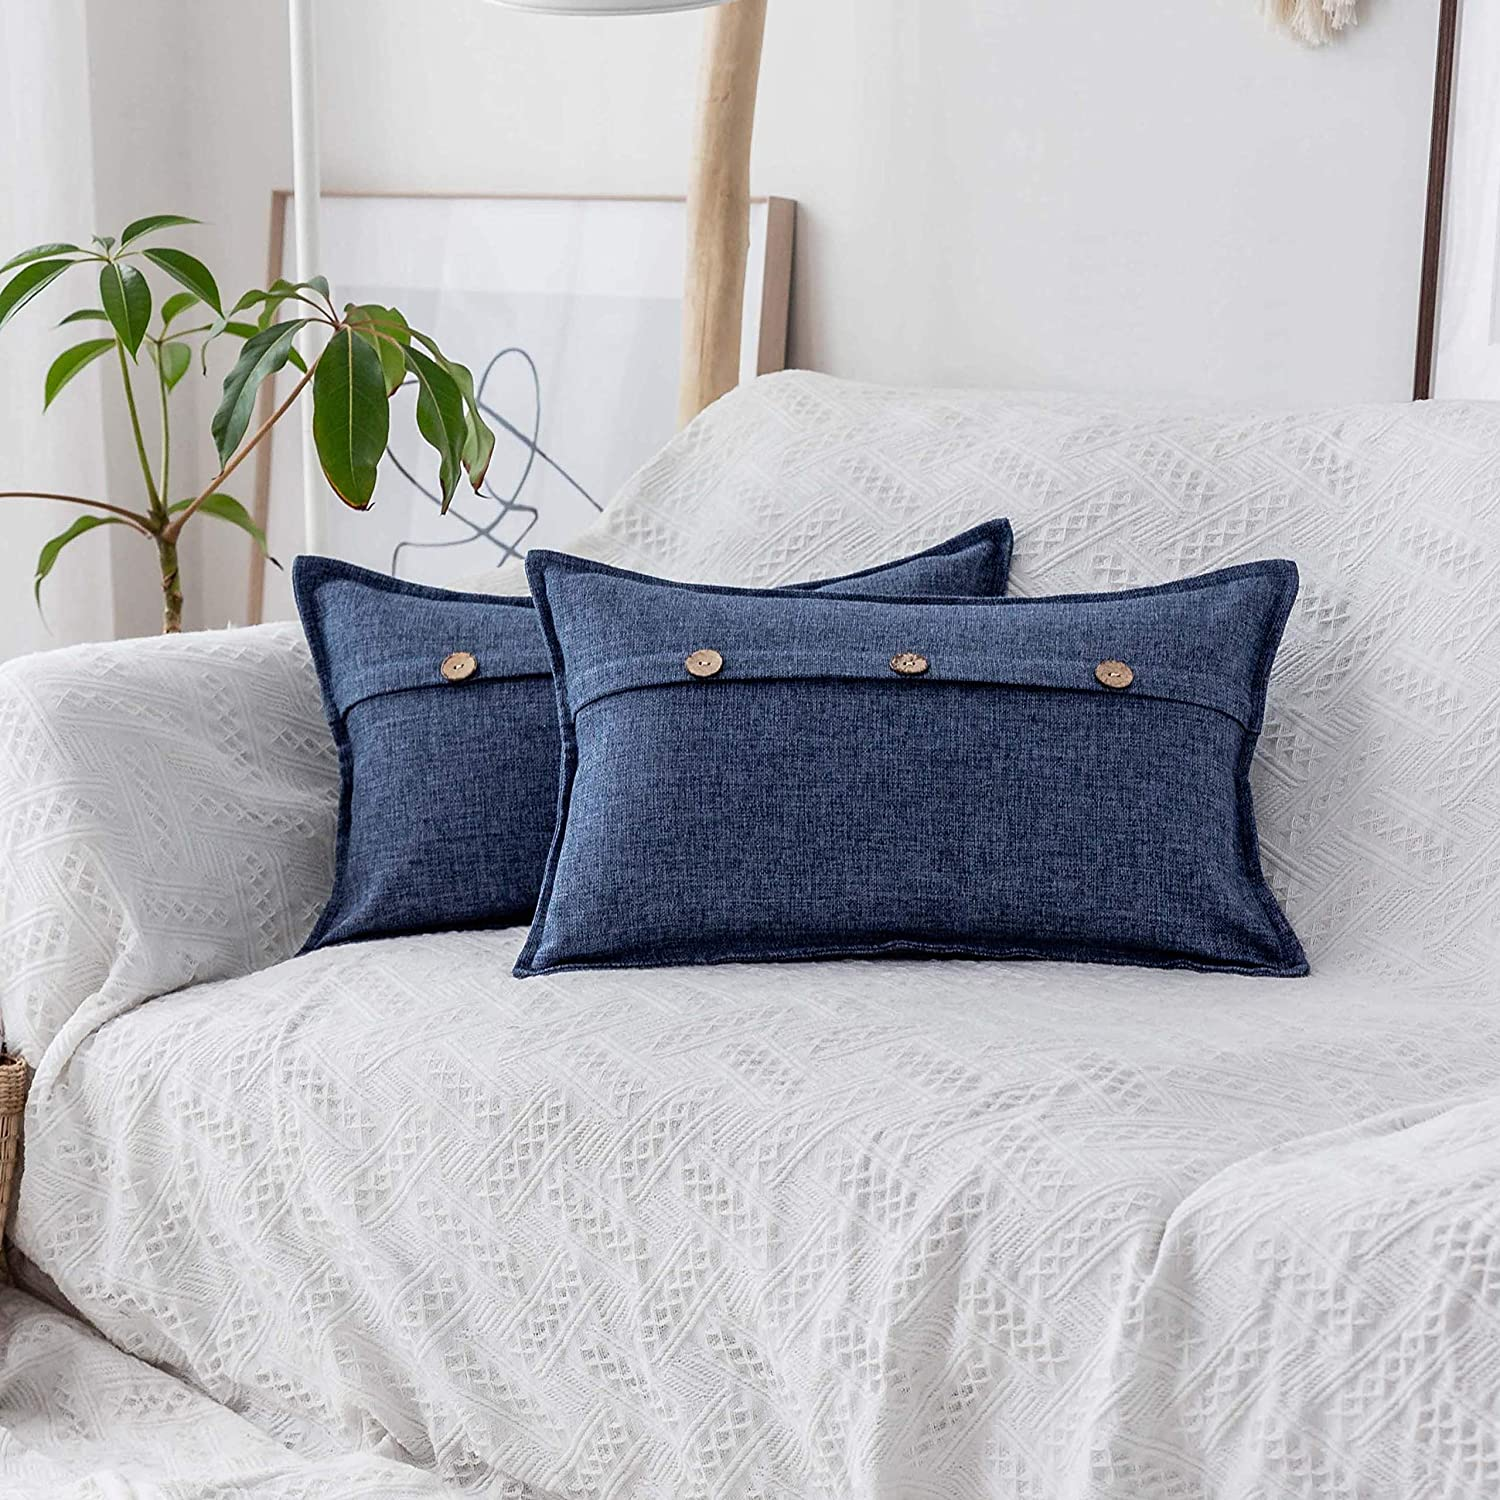 Home Brilliant Linen Throw Pillow Covers Triple Button Decorative Pillowcases Oblong Cushion Covers for Sofa Couch Bed, 12x20 inch (30x50cm), Navy Blue